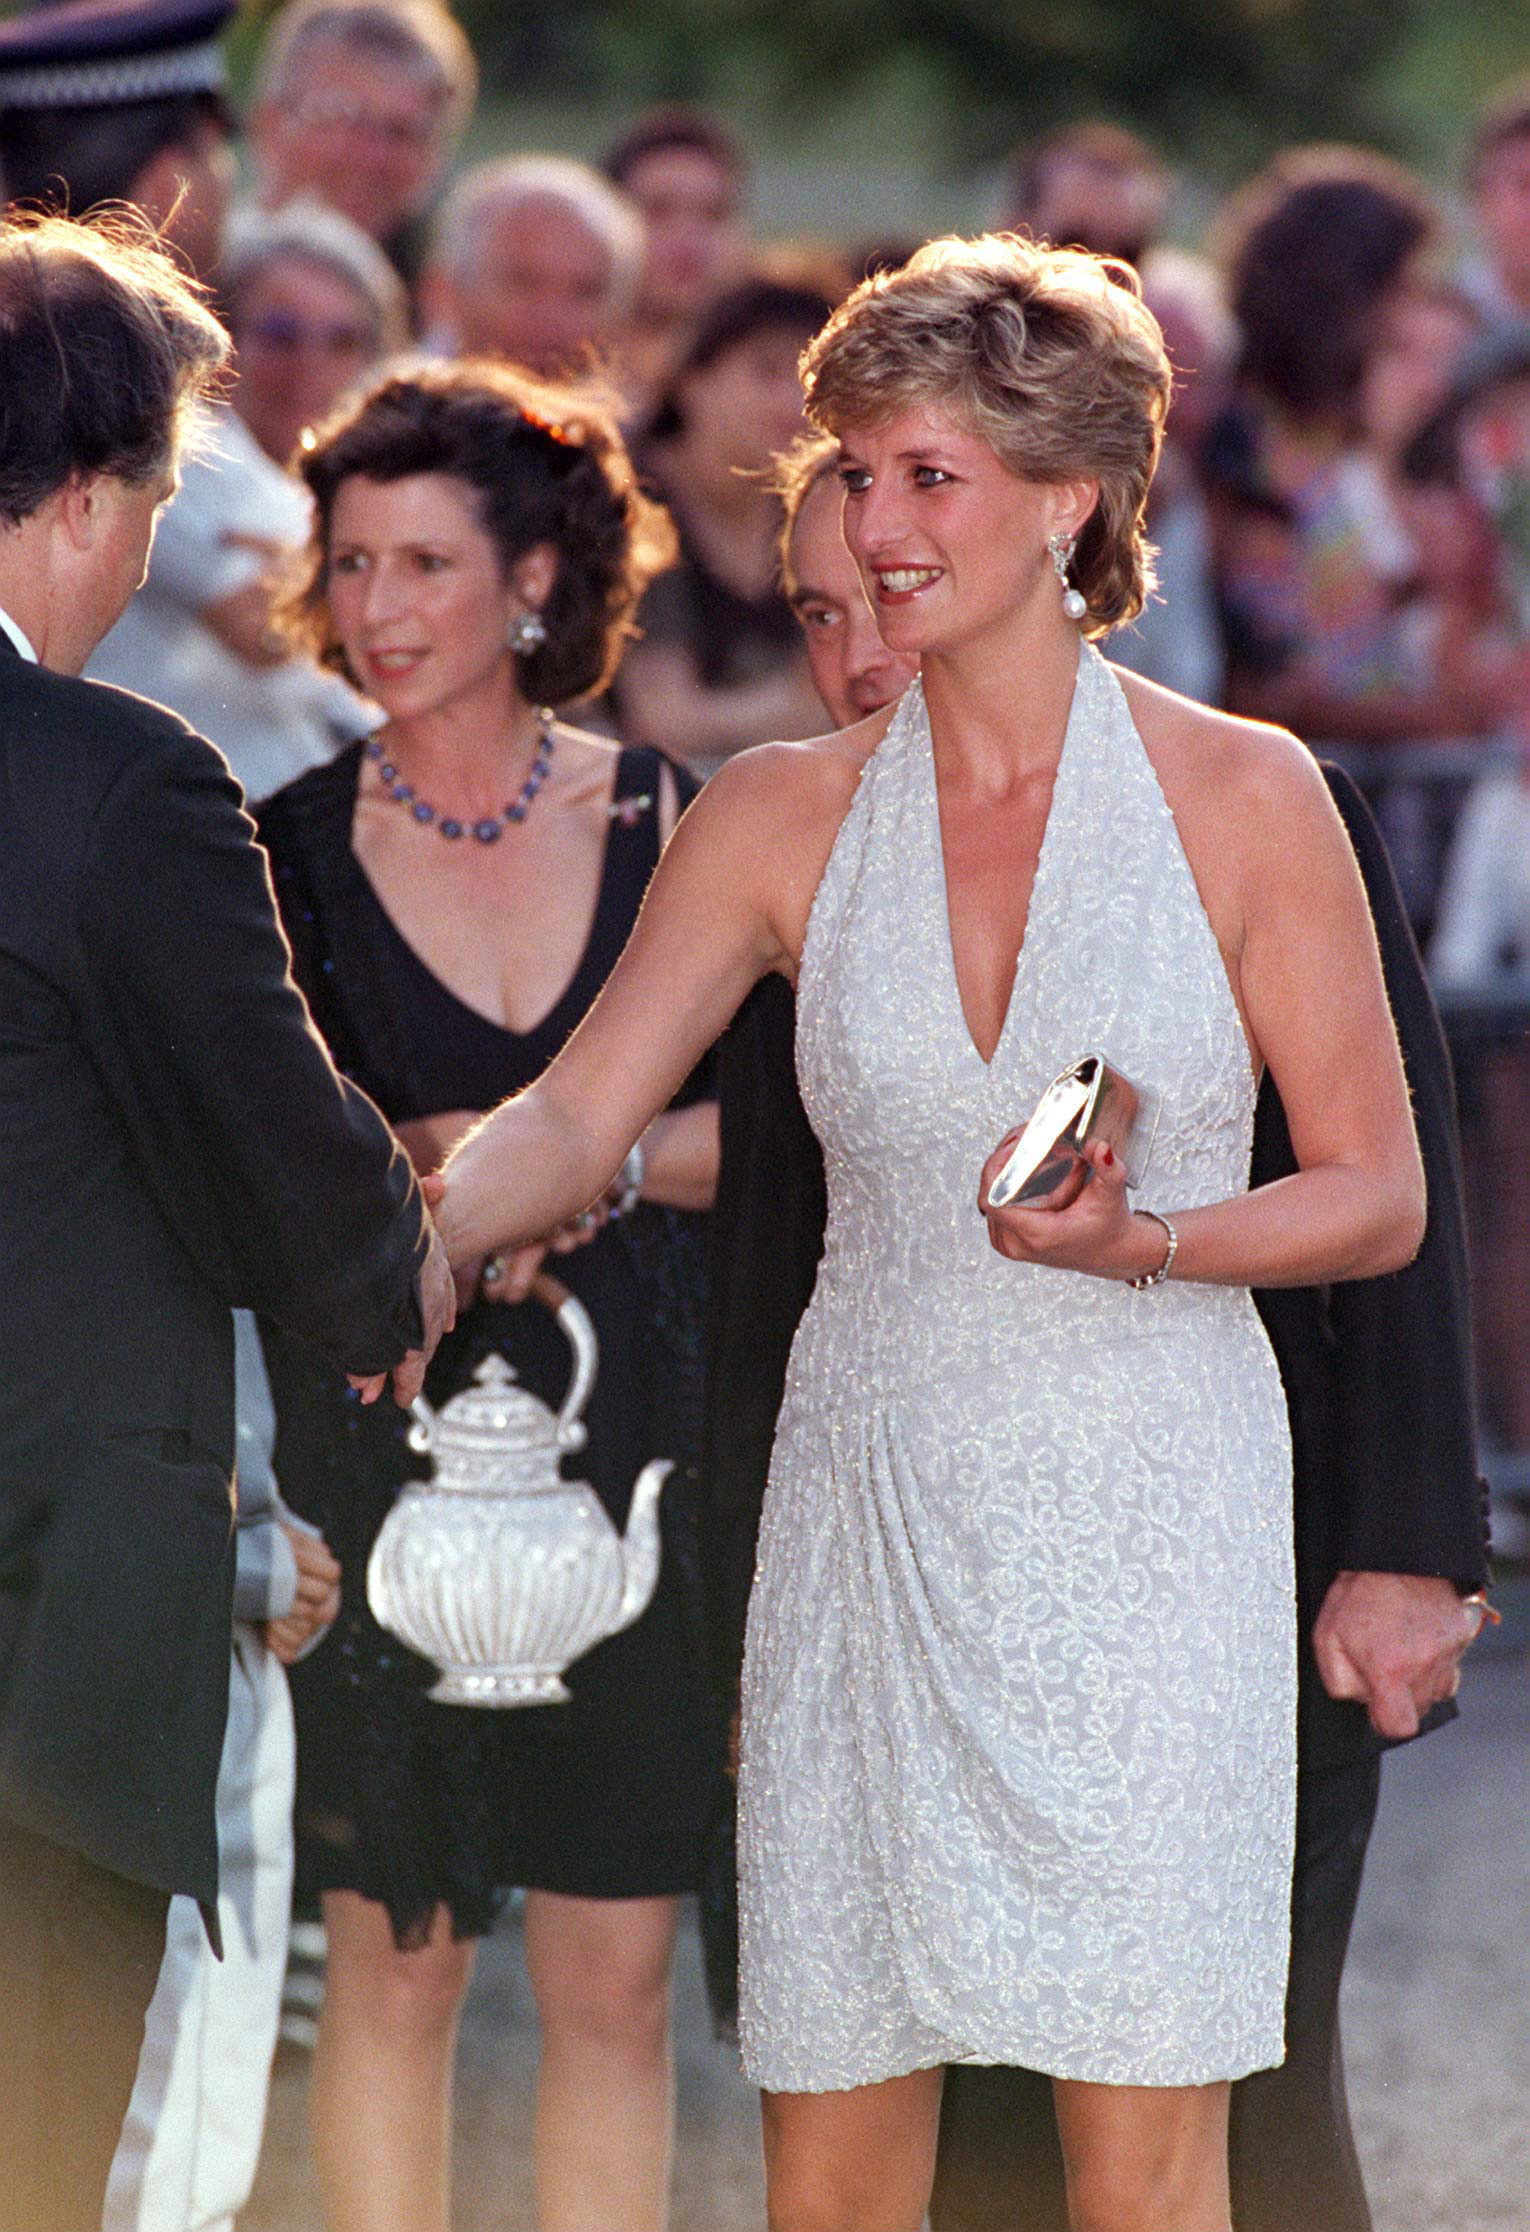 Following her separation from Prince Charles in 1992, Diana's wardrobe appeared to experience its own kind of freedom — here at a Vanity Fair party in 1995, the princess sports a short, glittery halter dress.